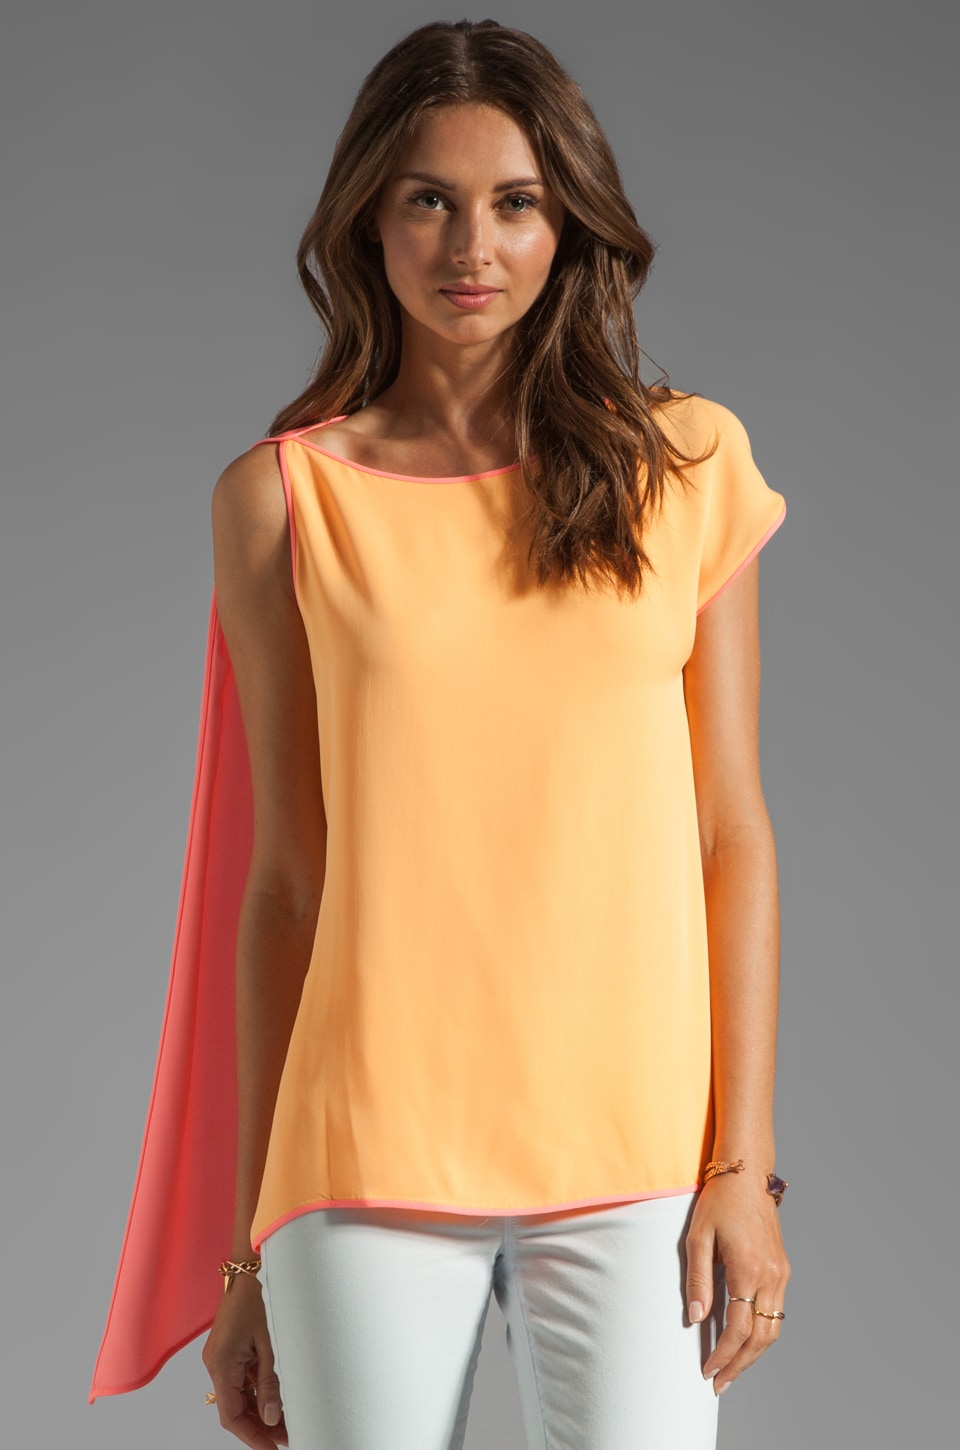 Halston Heritage Drapey Top in Nectar/Bright Guava